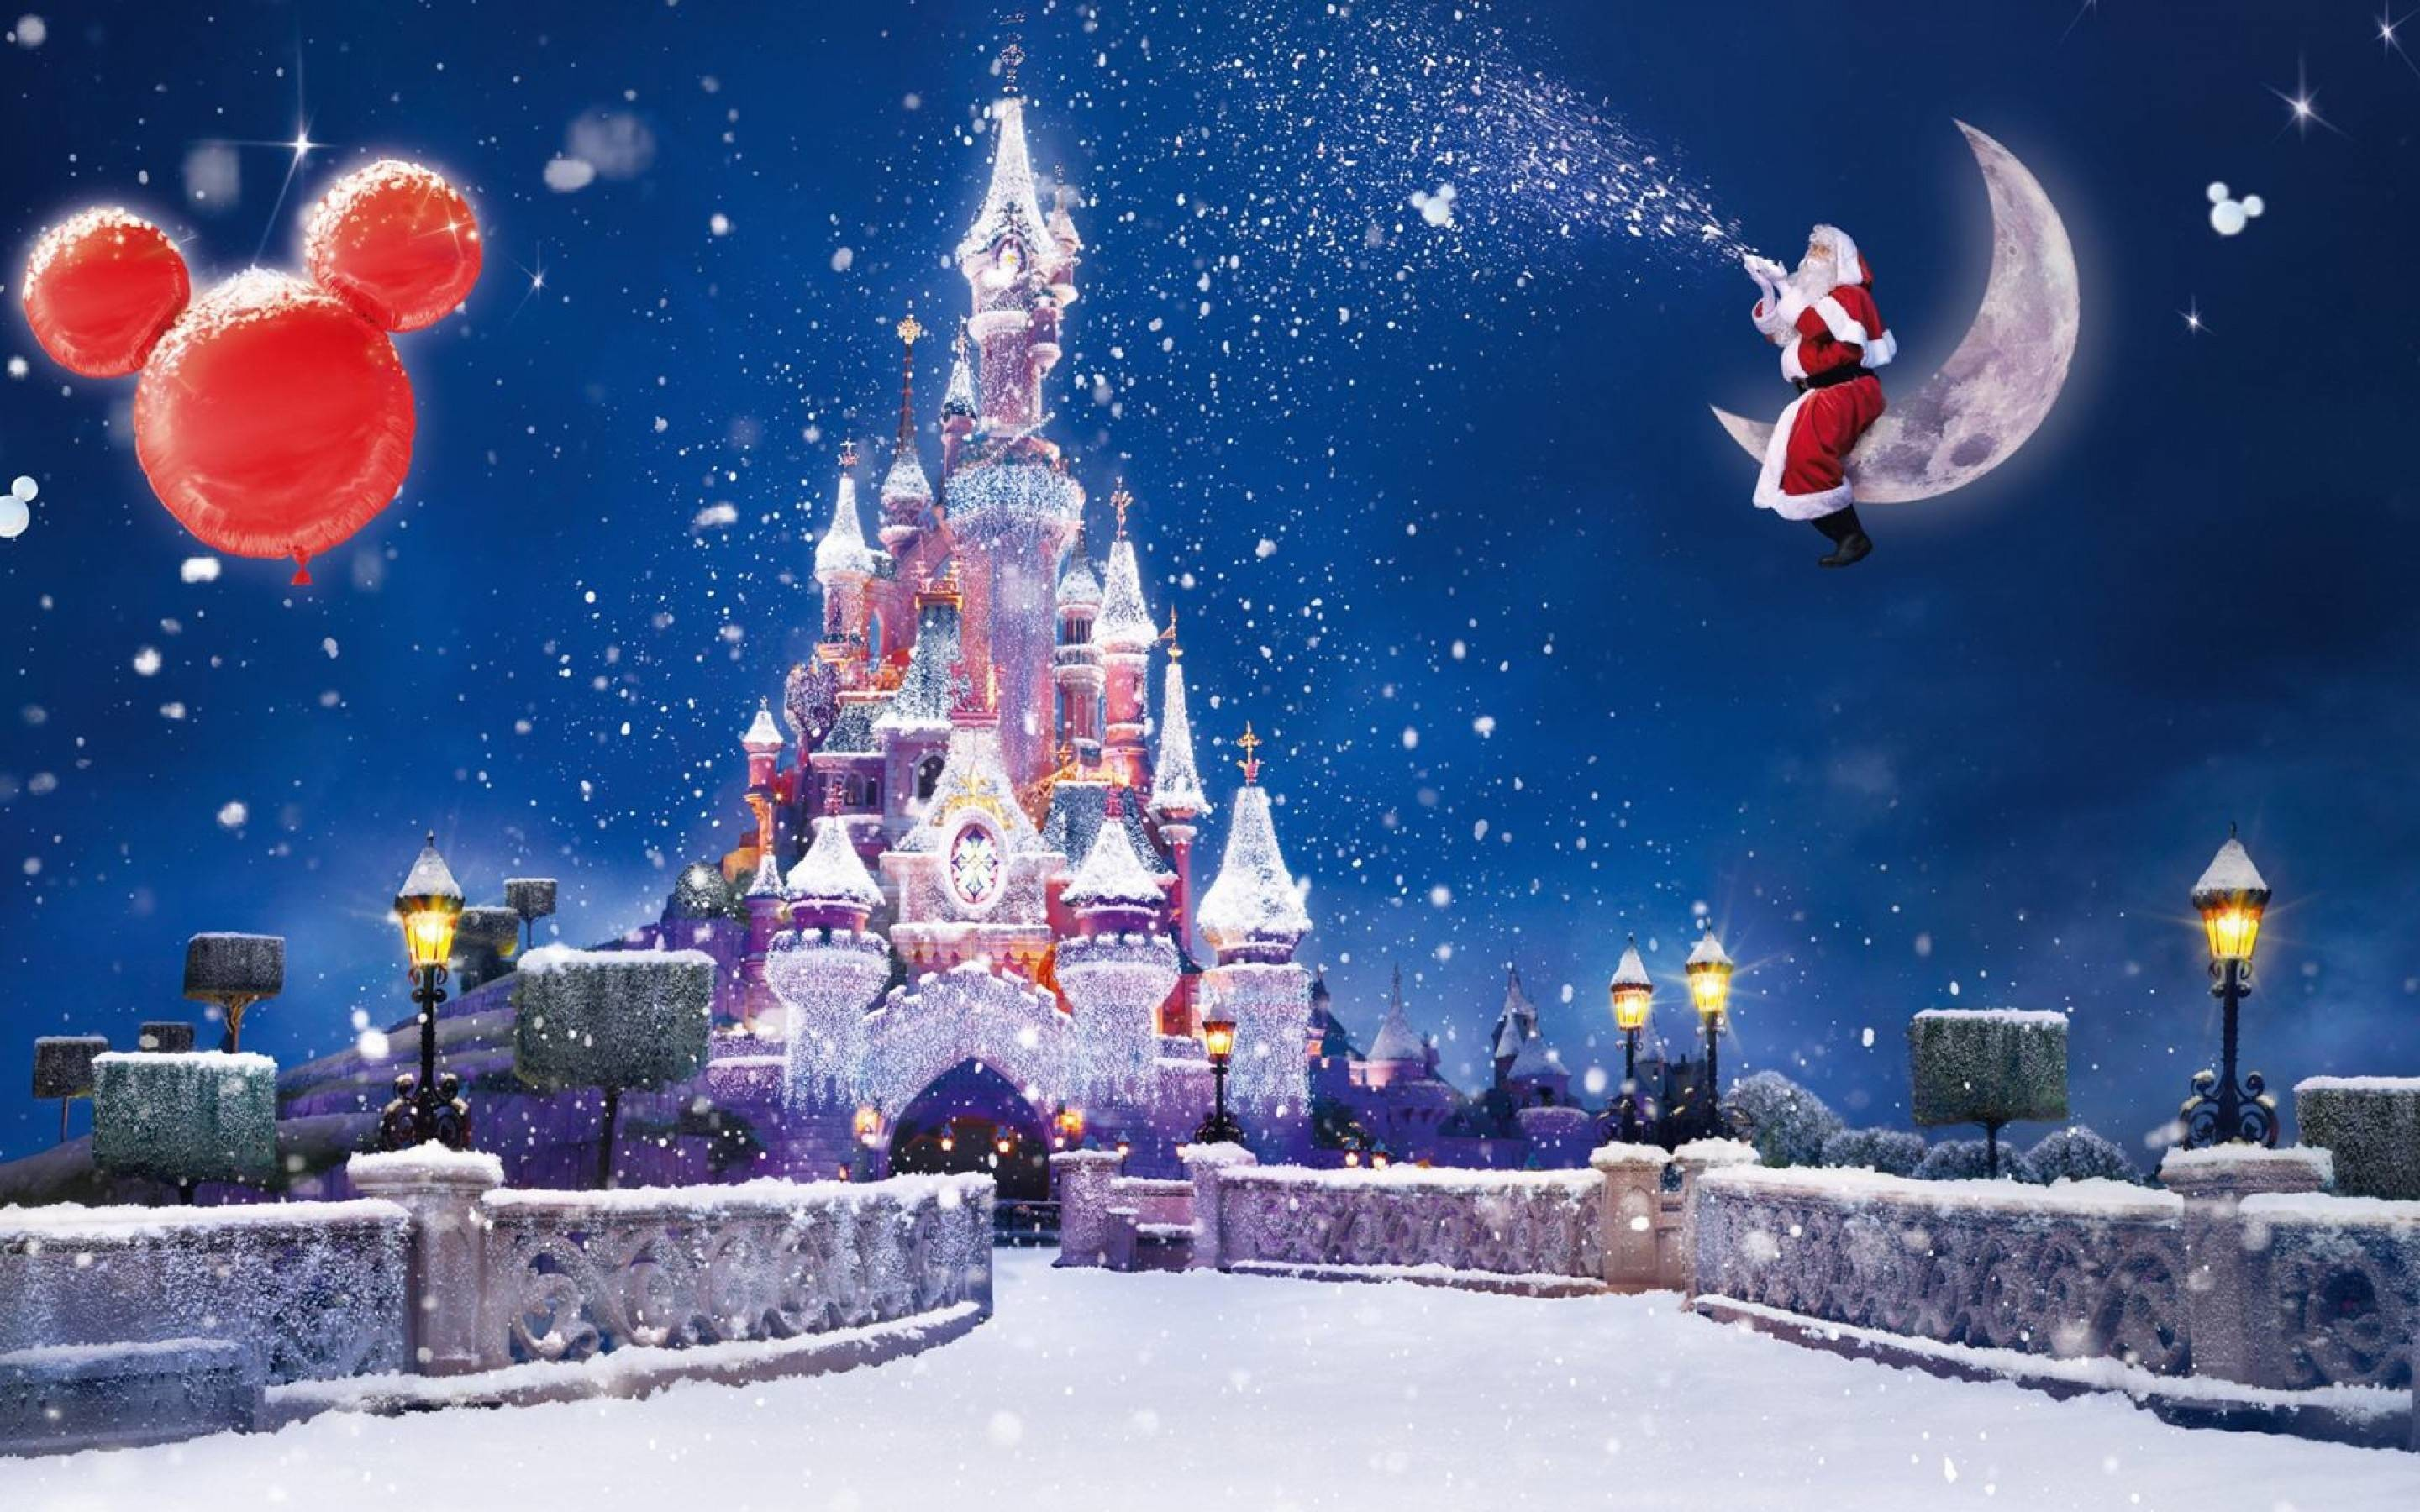 Disney Christmas Wallpaper Desktop 57 Images